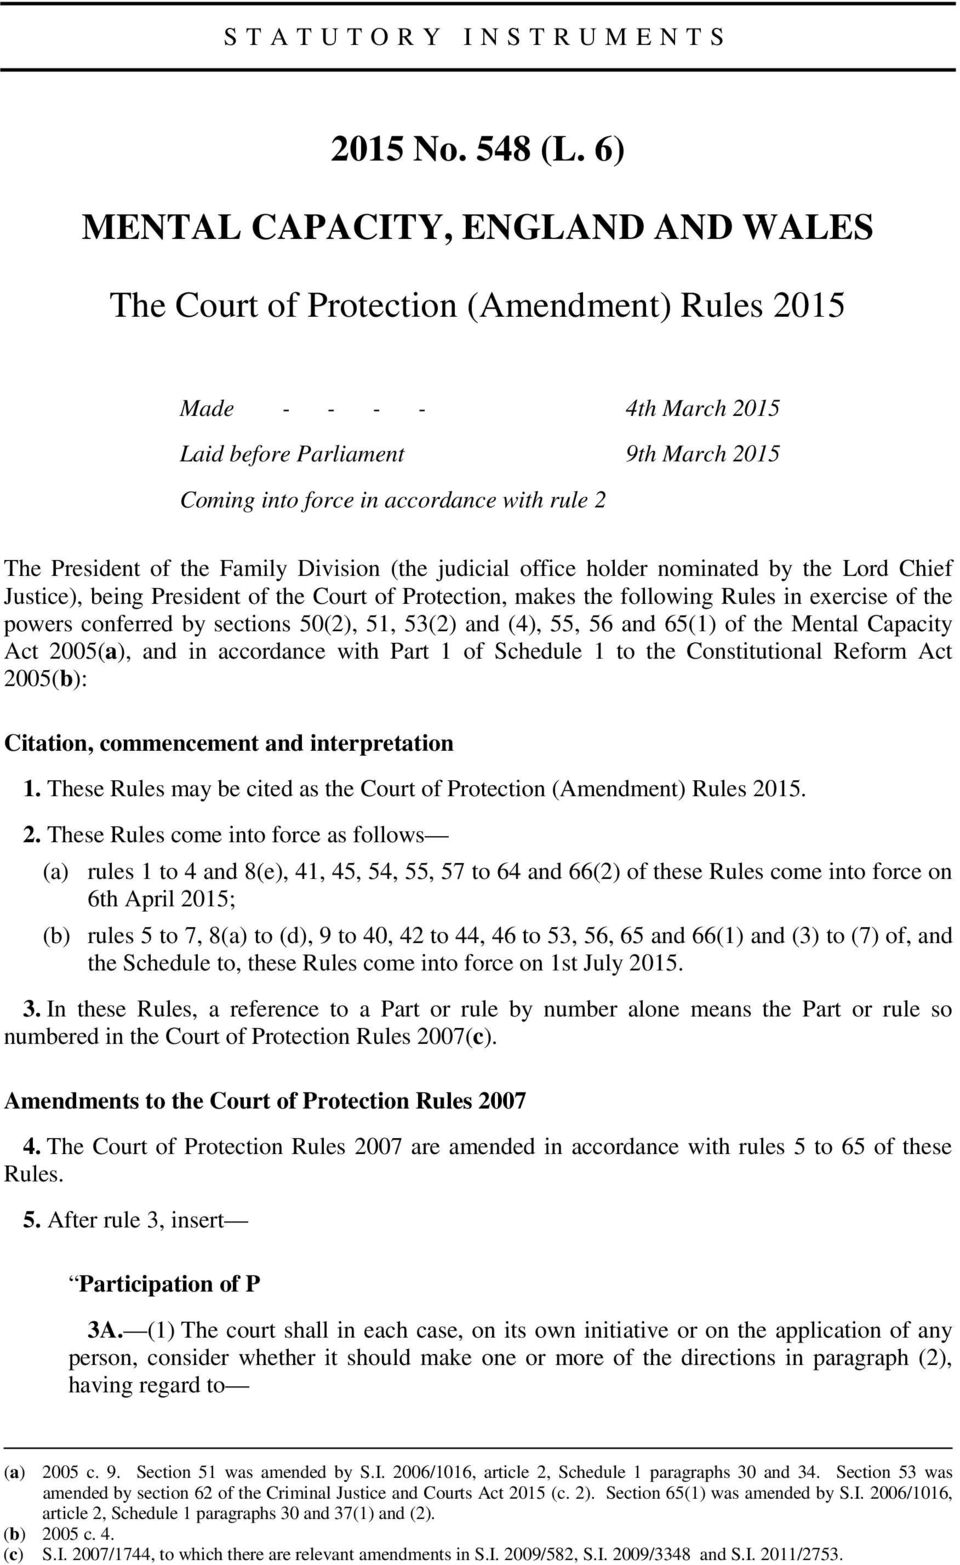 President of the Family Division (the judicial office holder nominated by the Lord Chief Justice), being President of the Court of Protection, makes the following Rules in exercise of the powers